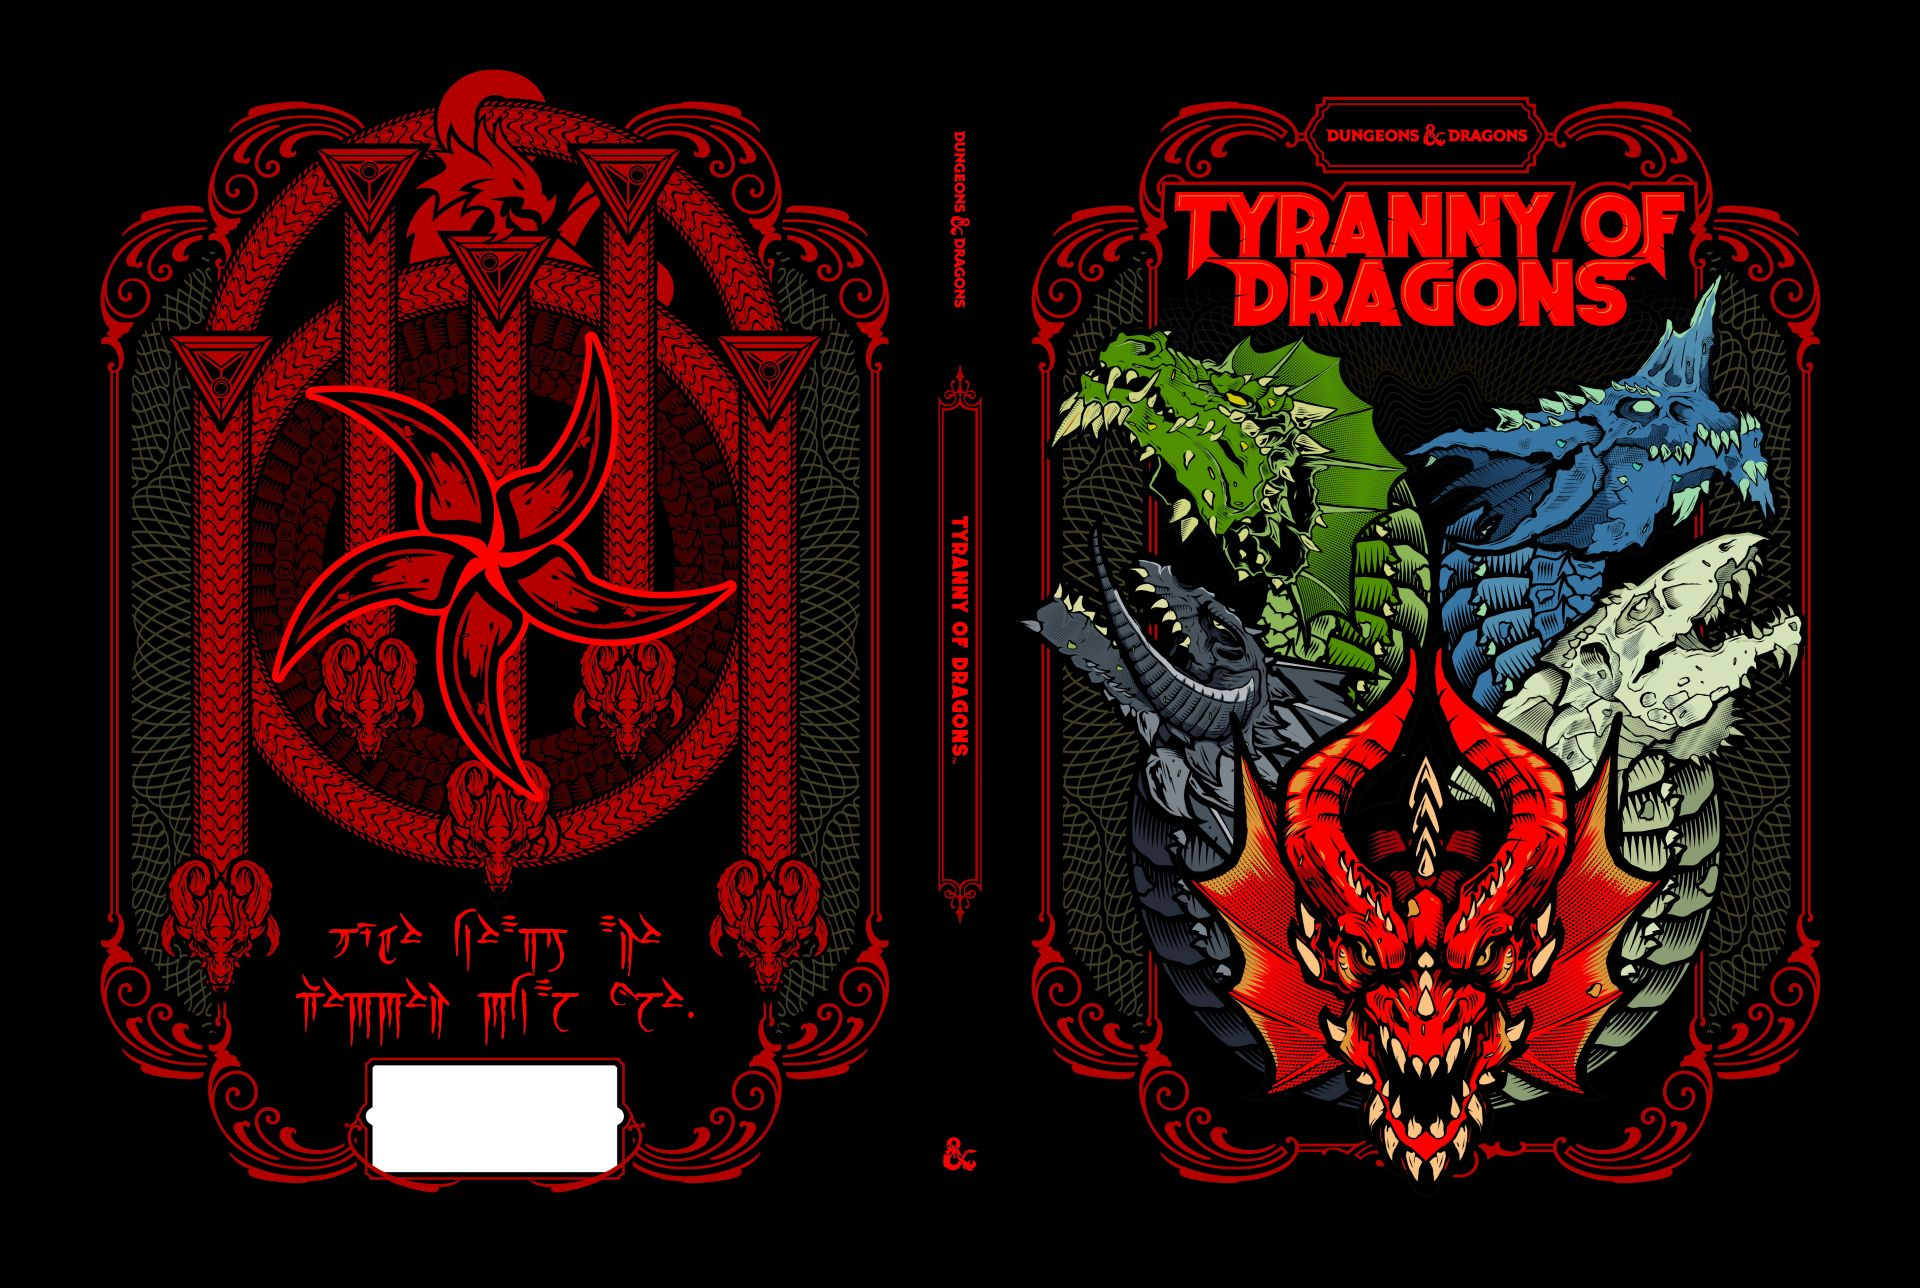 DUNGEONS & DRAGONS to Re-Release TYRANNY OF DRAGONS In Celebration